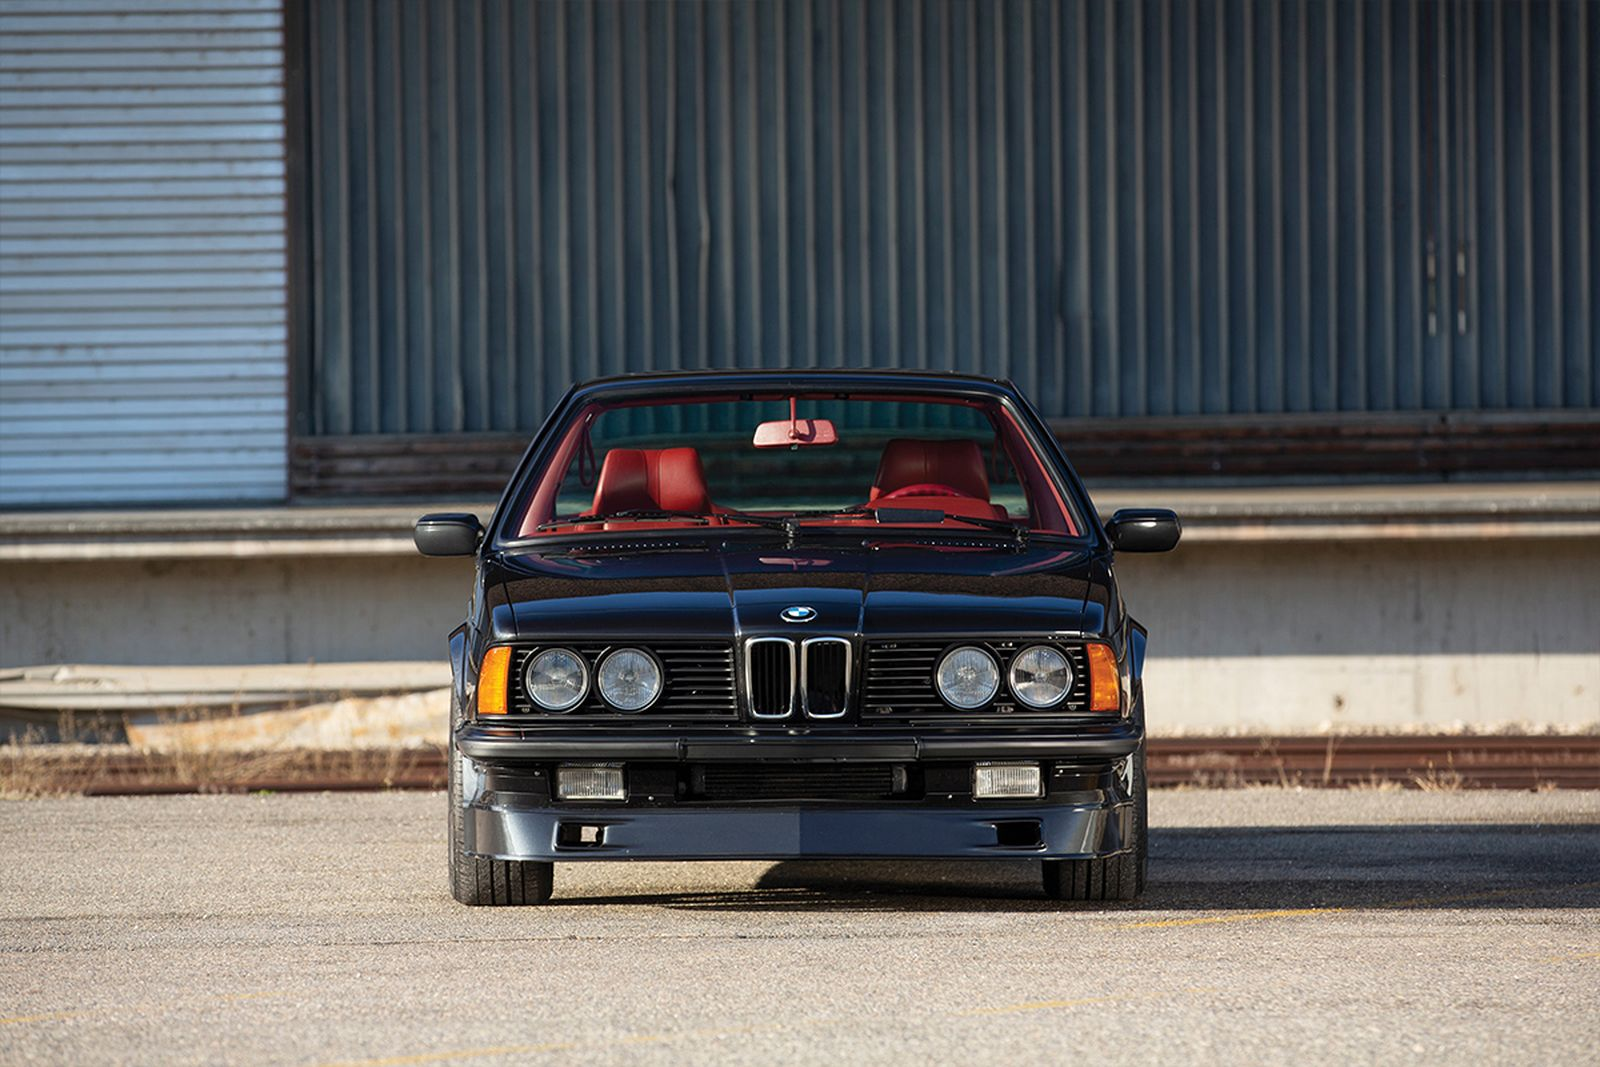 bmw 1987 alpina b7 turbo coupe sothebys auction RM Sotheby's